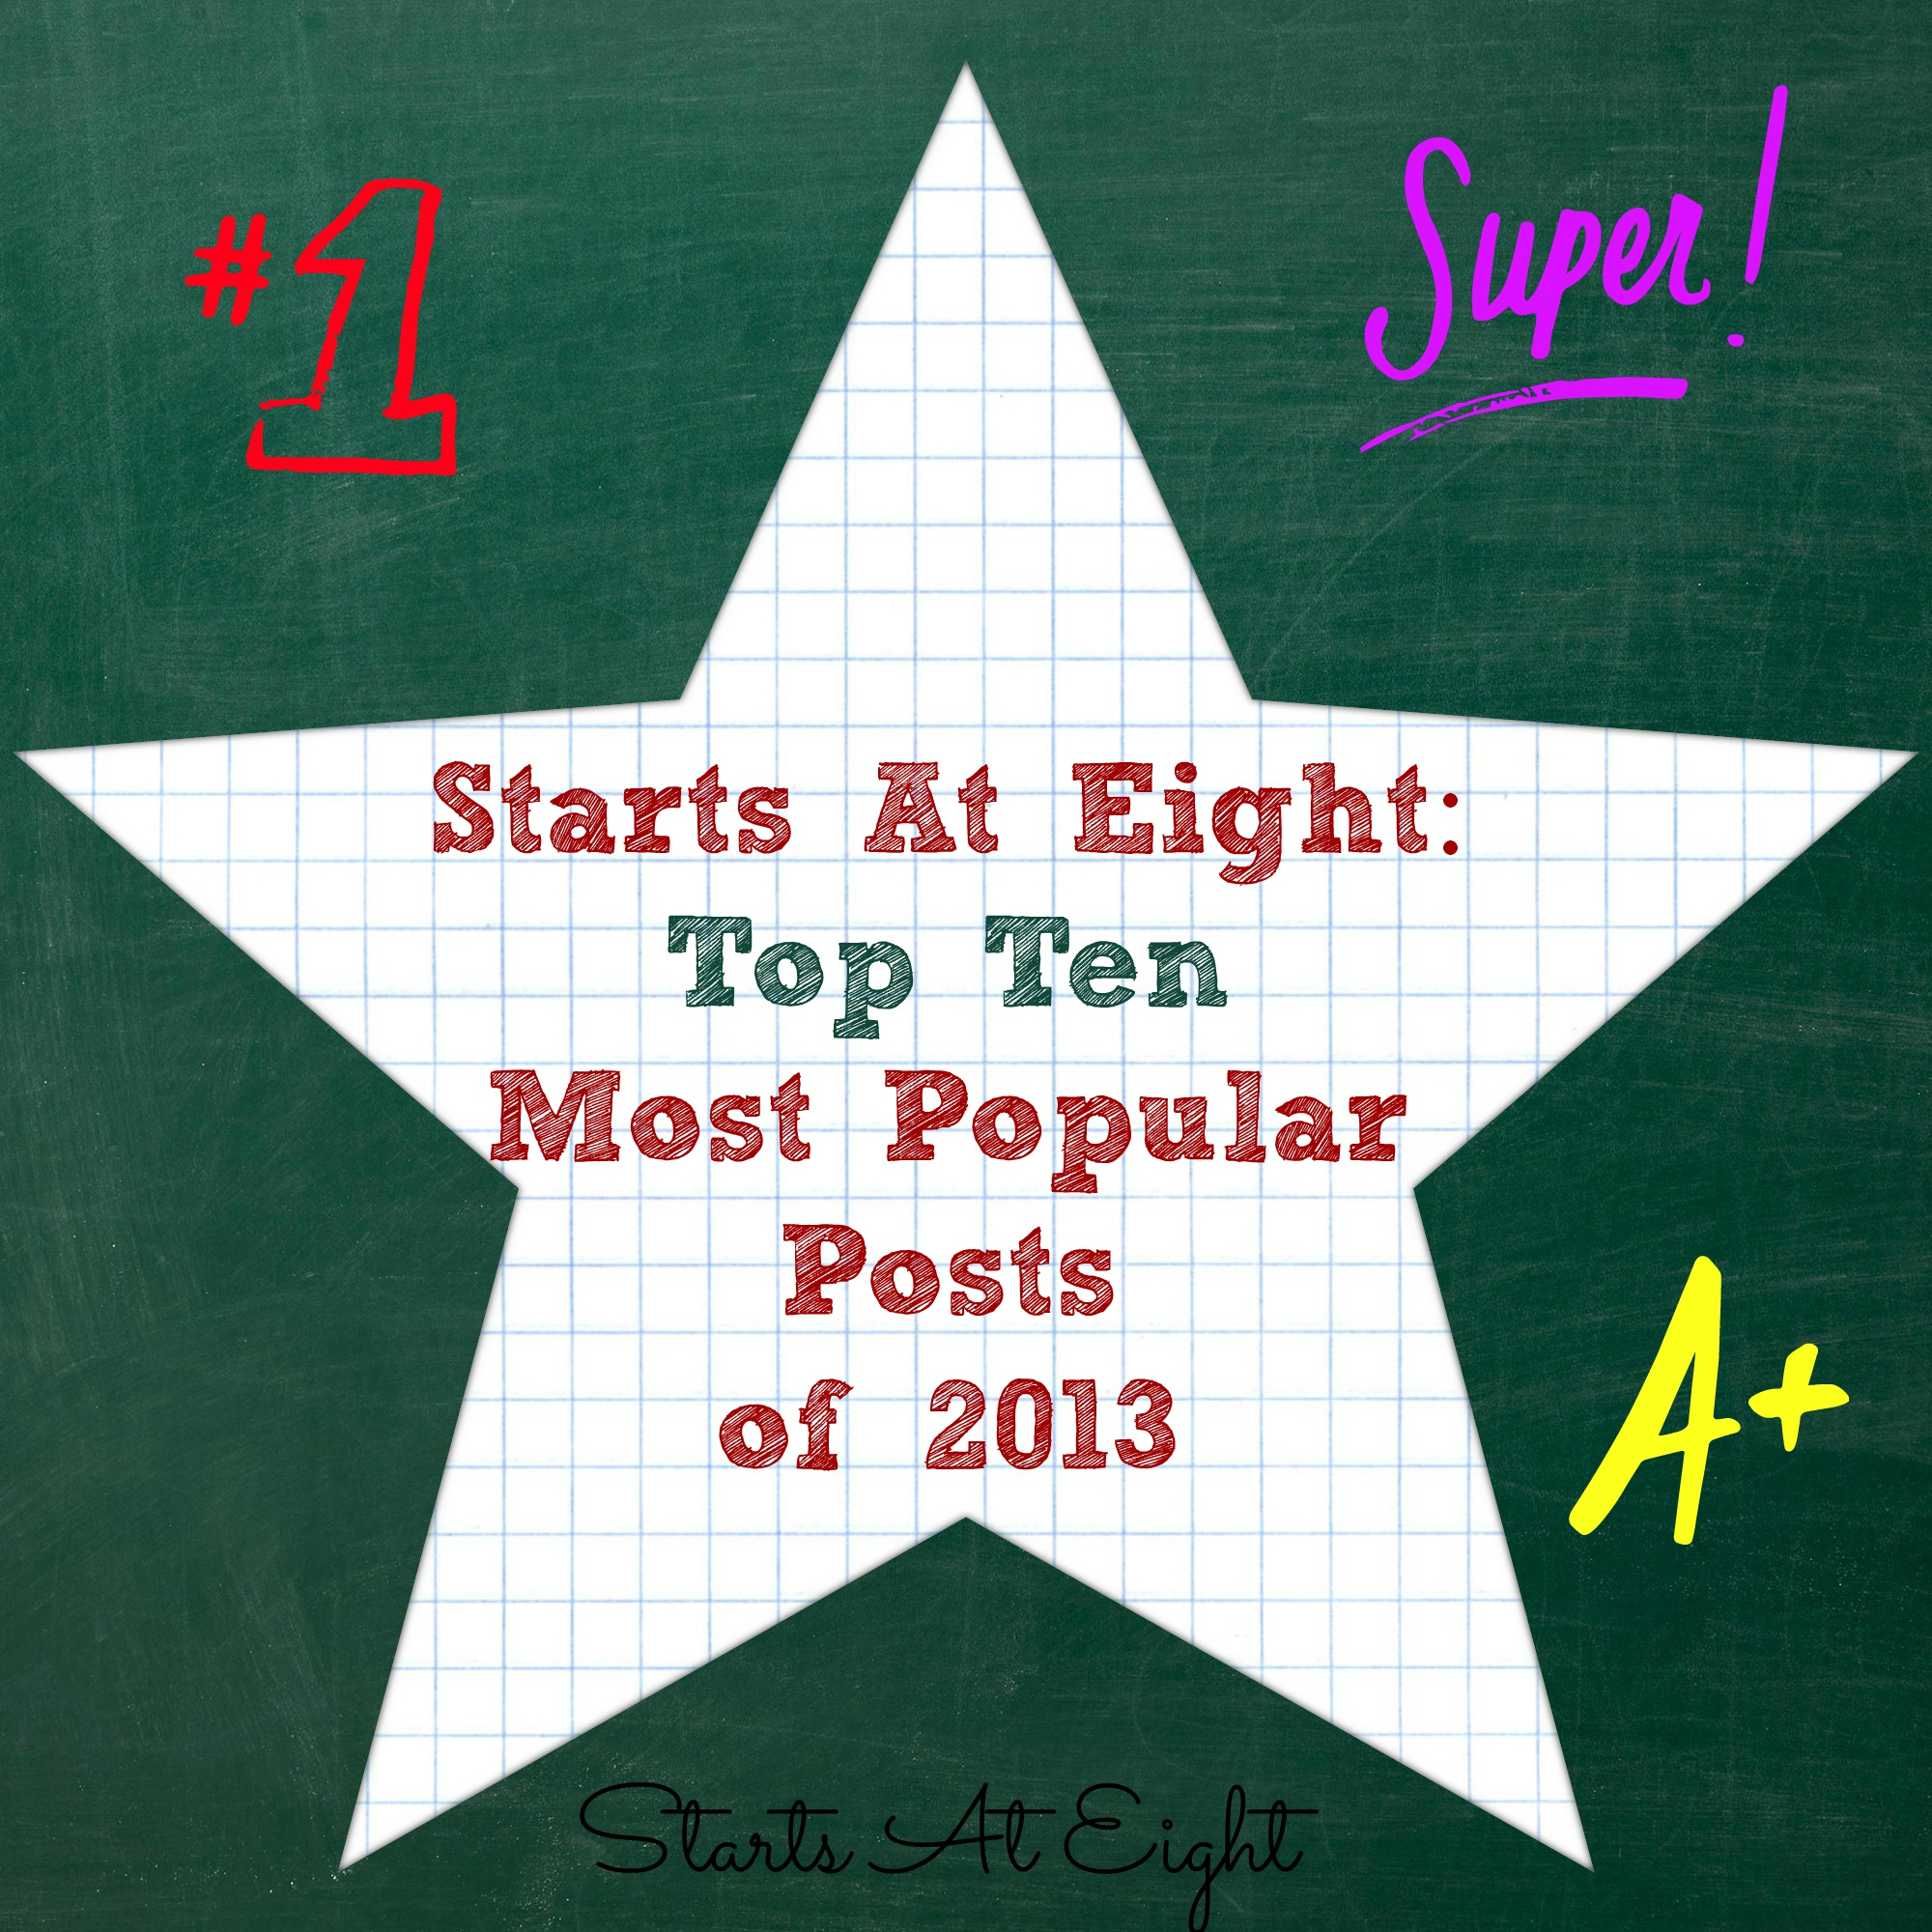 Starts At Eight: Top Ten Most Popular Posts of 2013